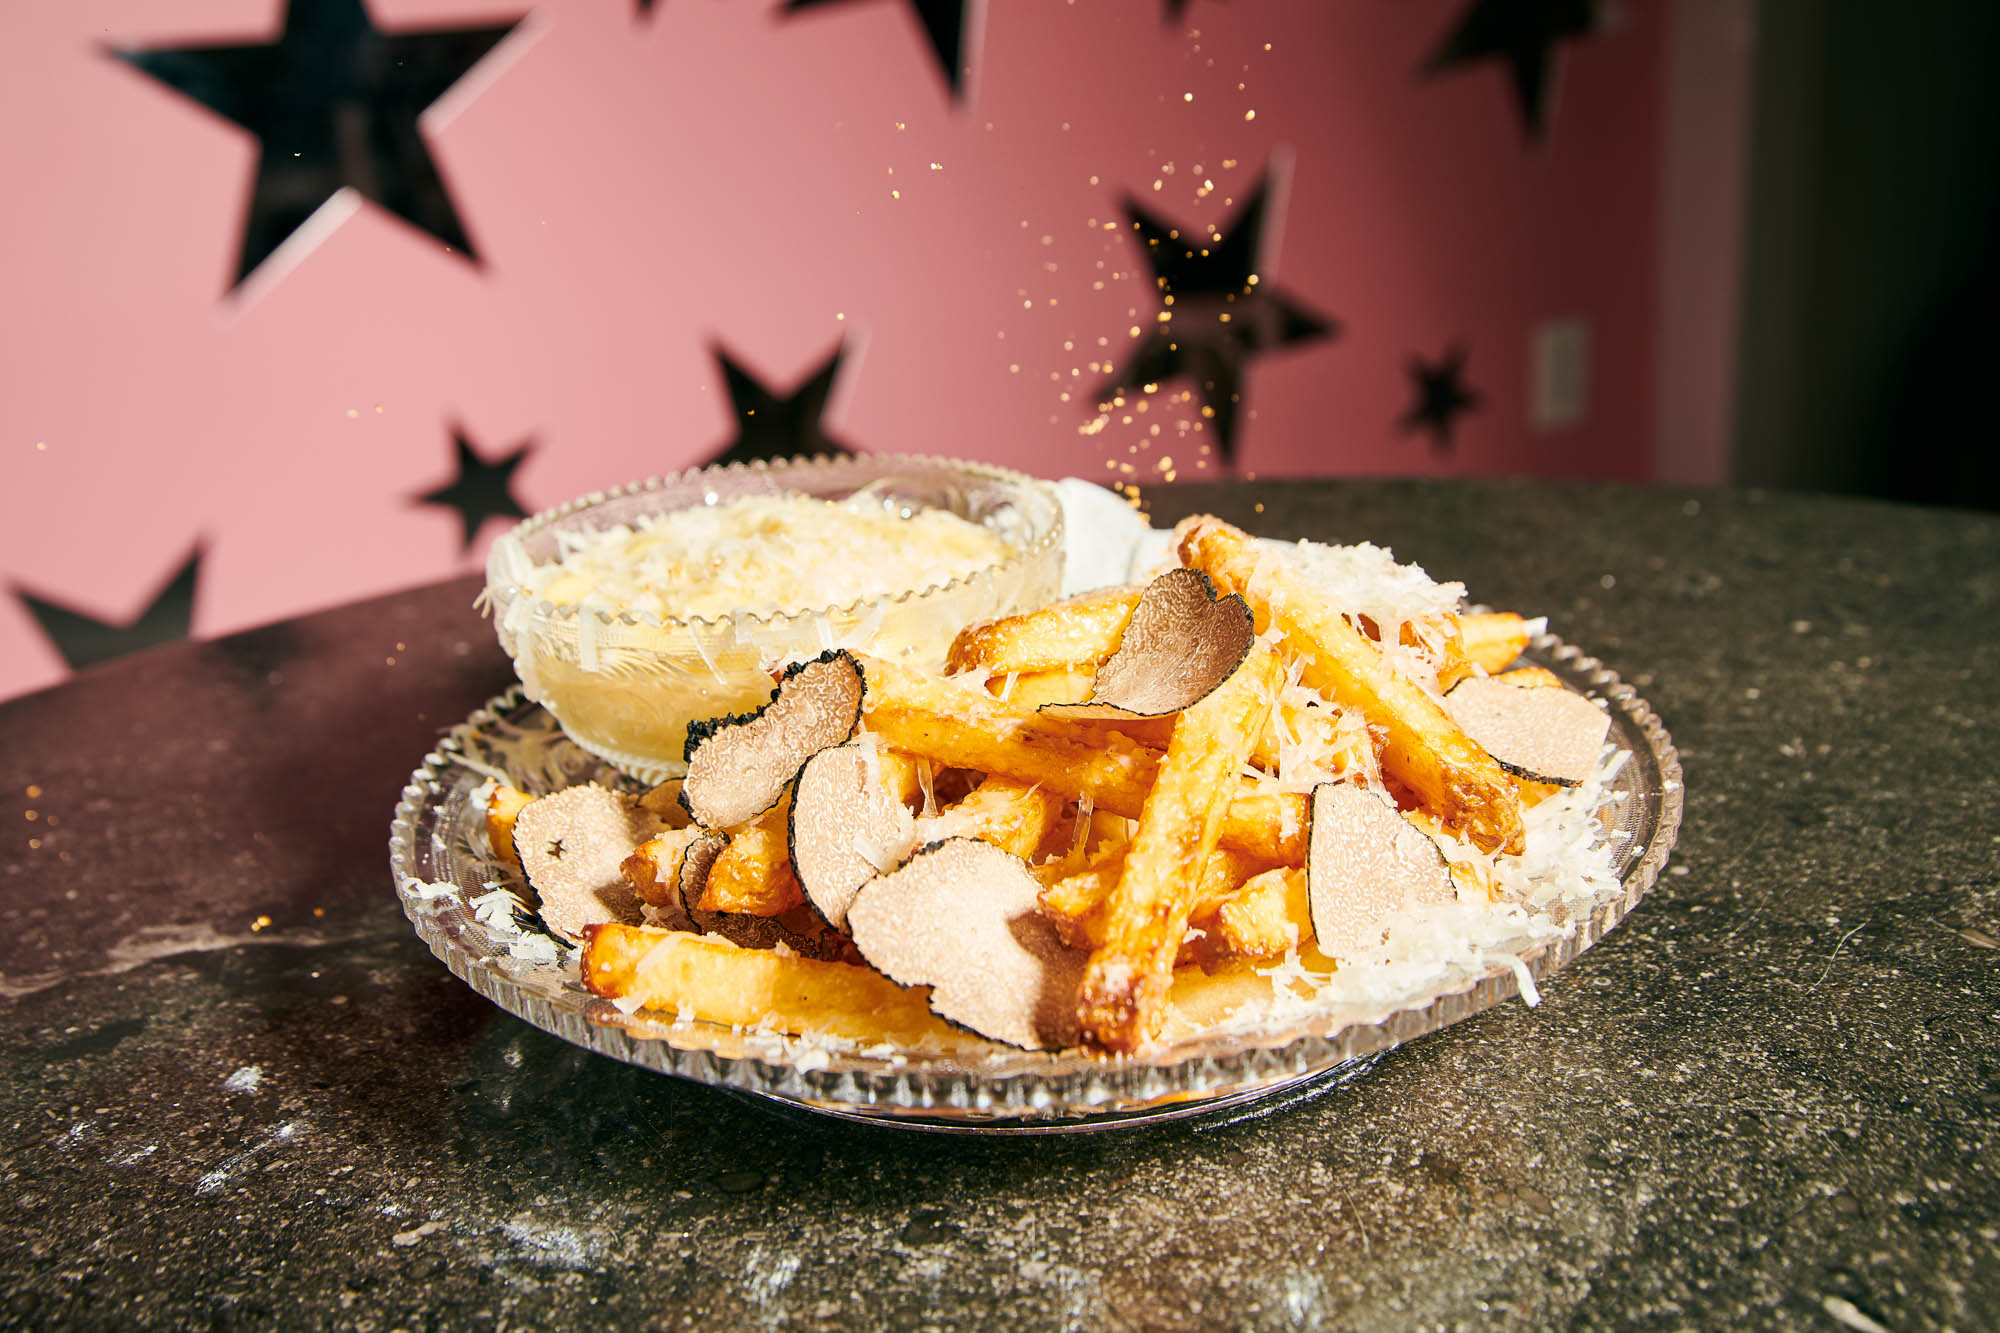 sprinkling edible gold dust on the most expensive fries